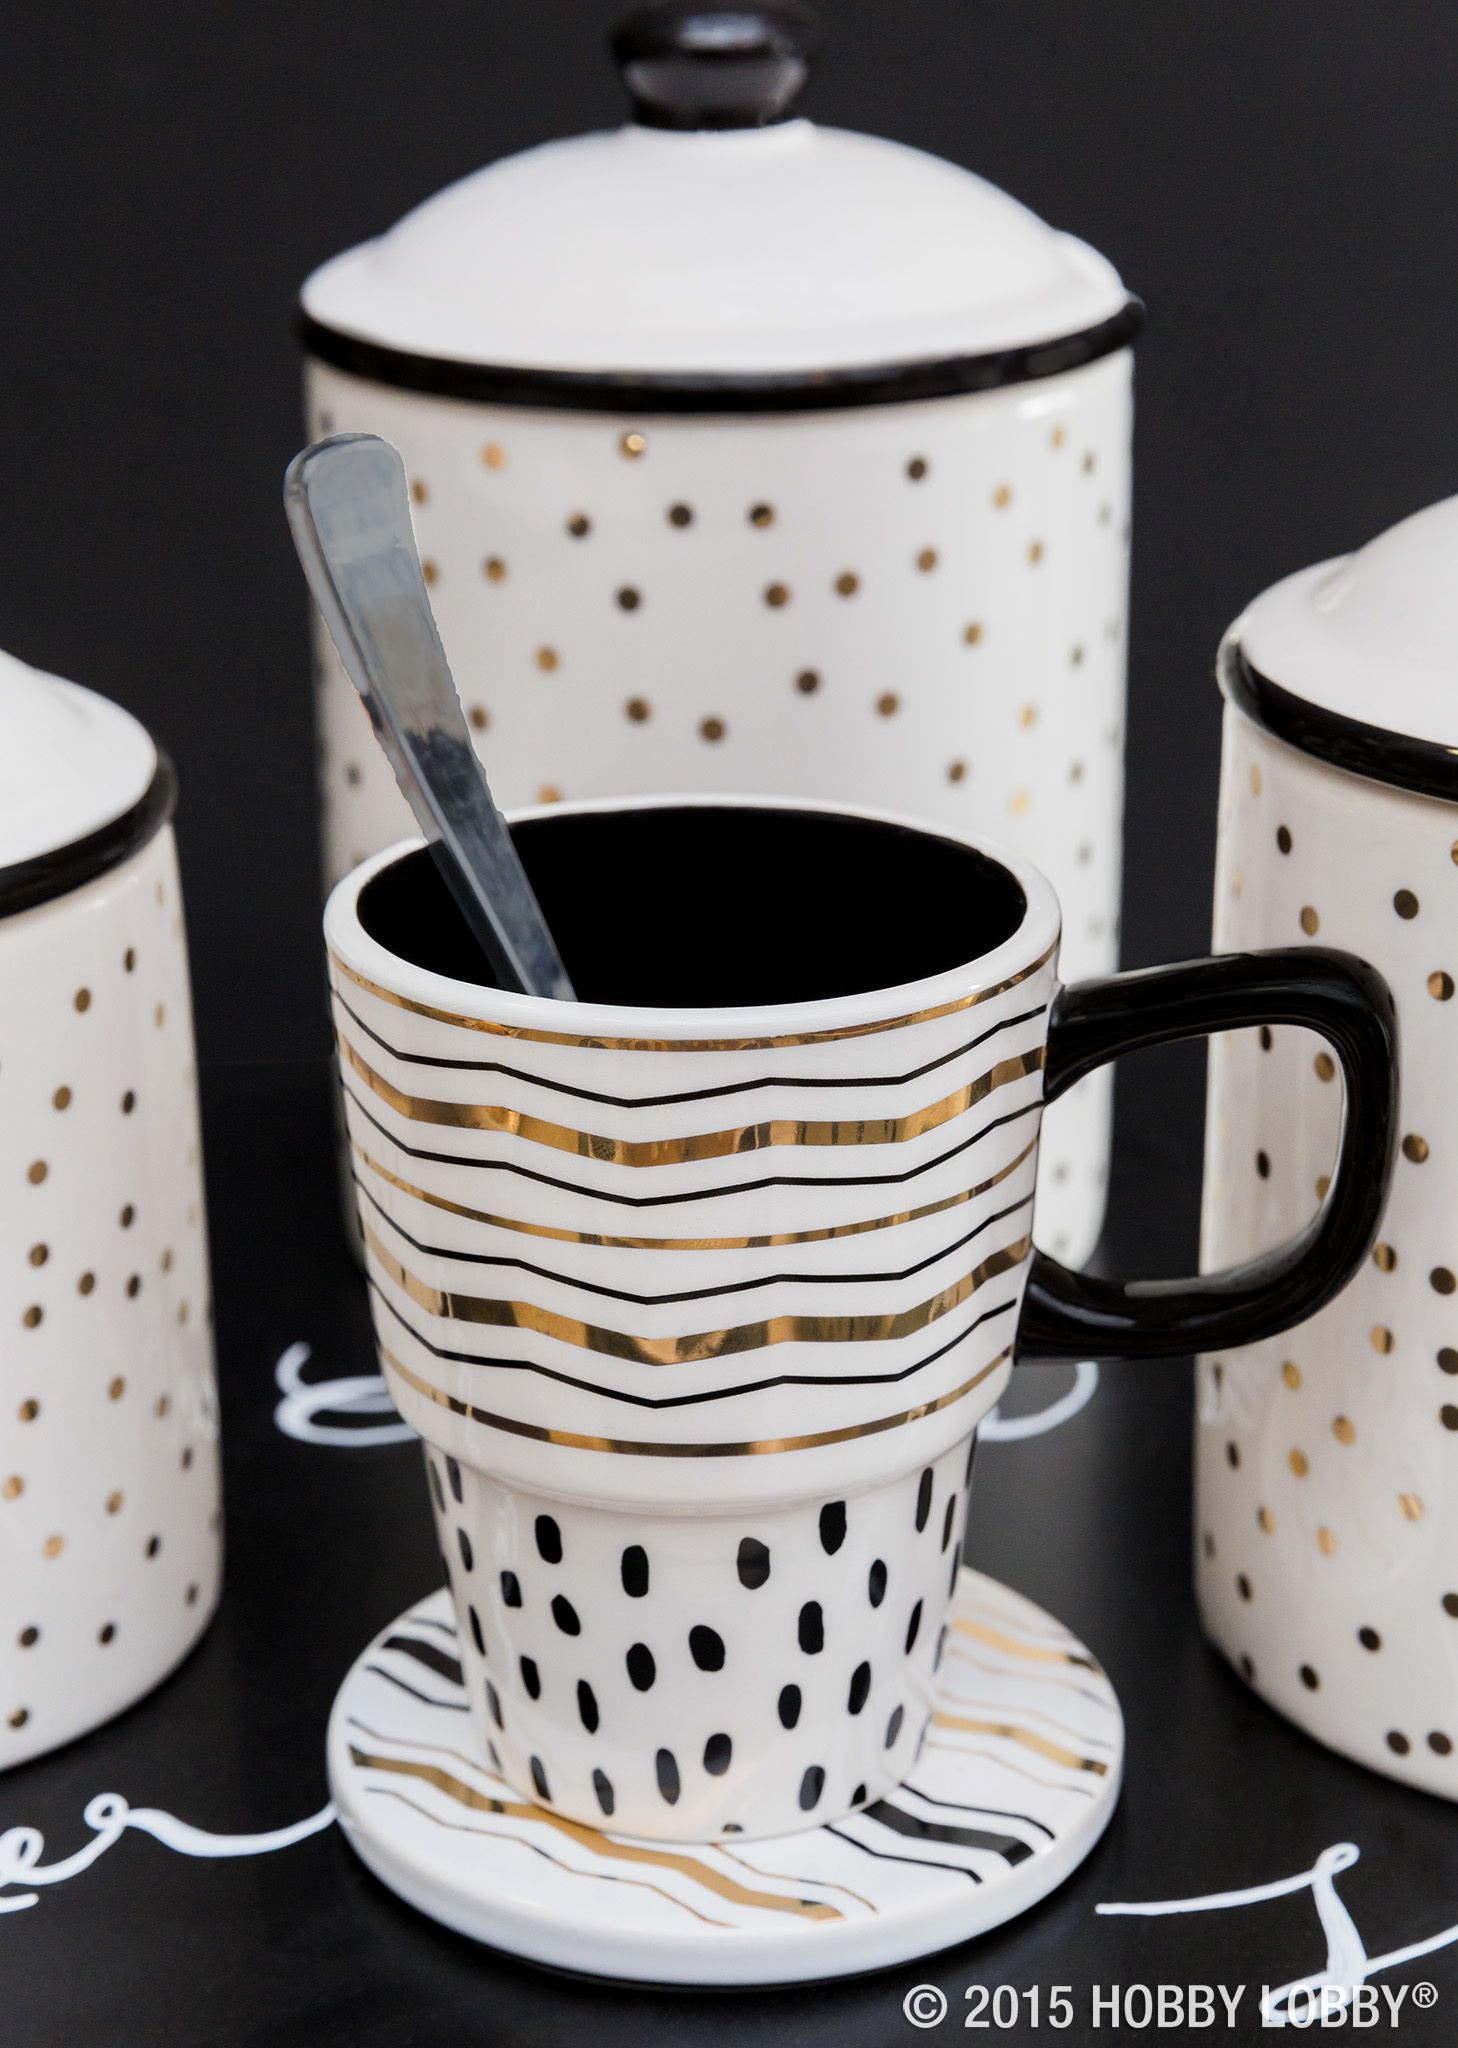 You deserve a break Consume your coffee in style with a delectably dazzling table setting